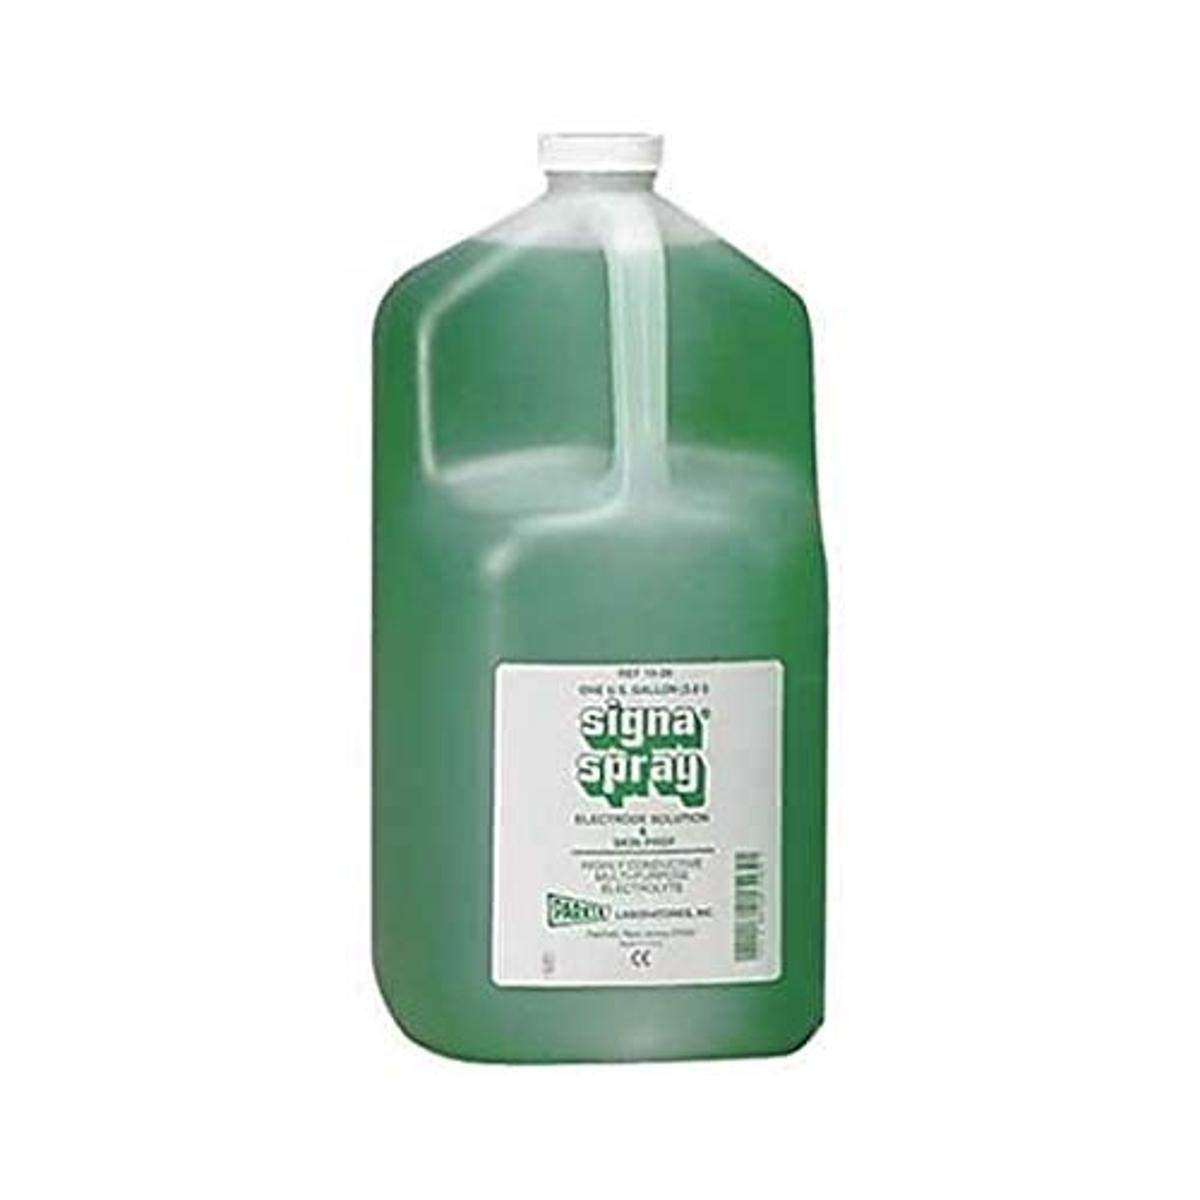 Parker Signa Spray Gallon All stores New mail order are sold